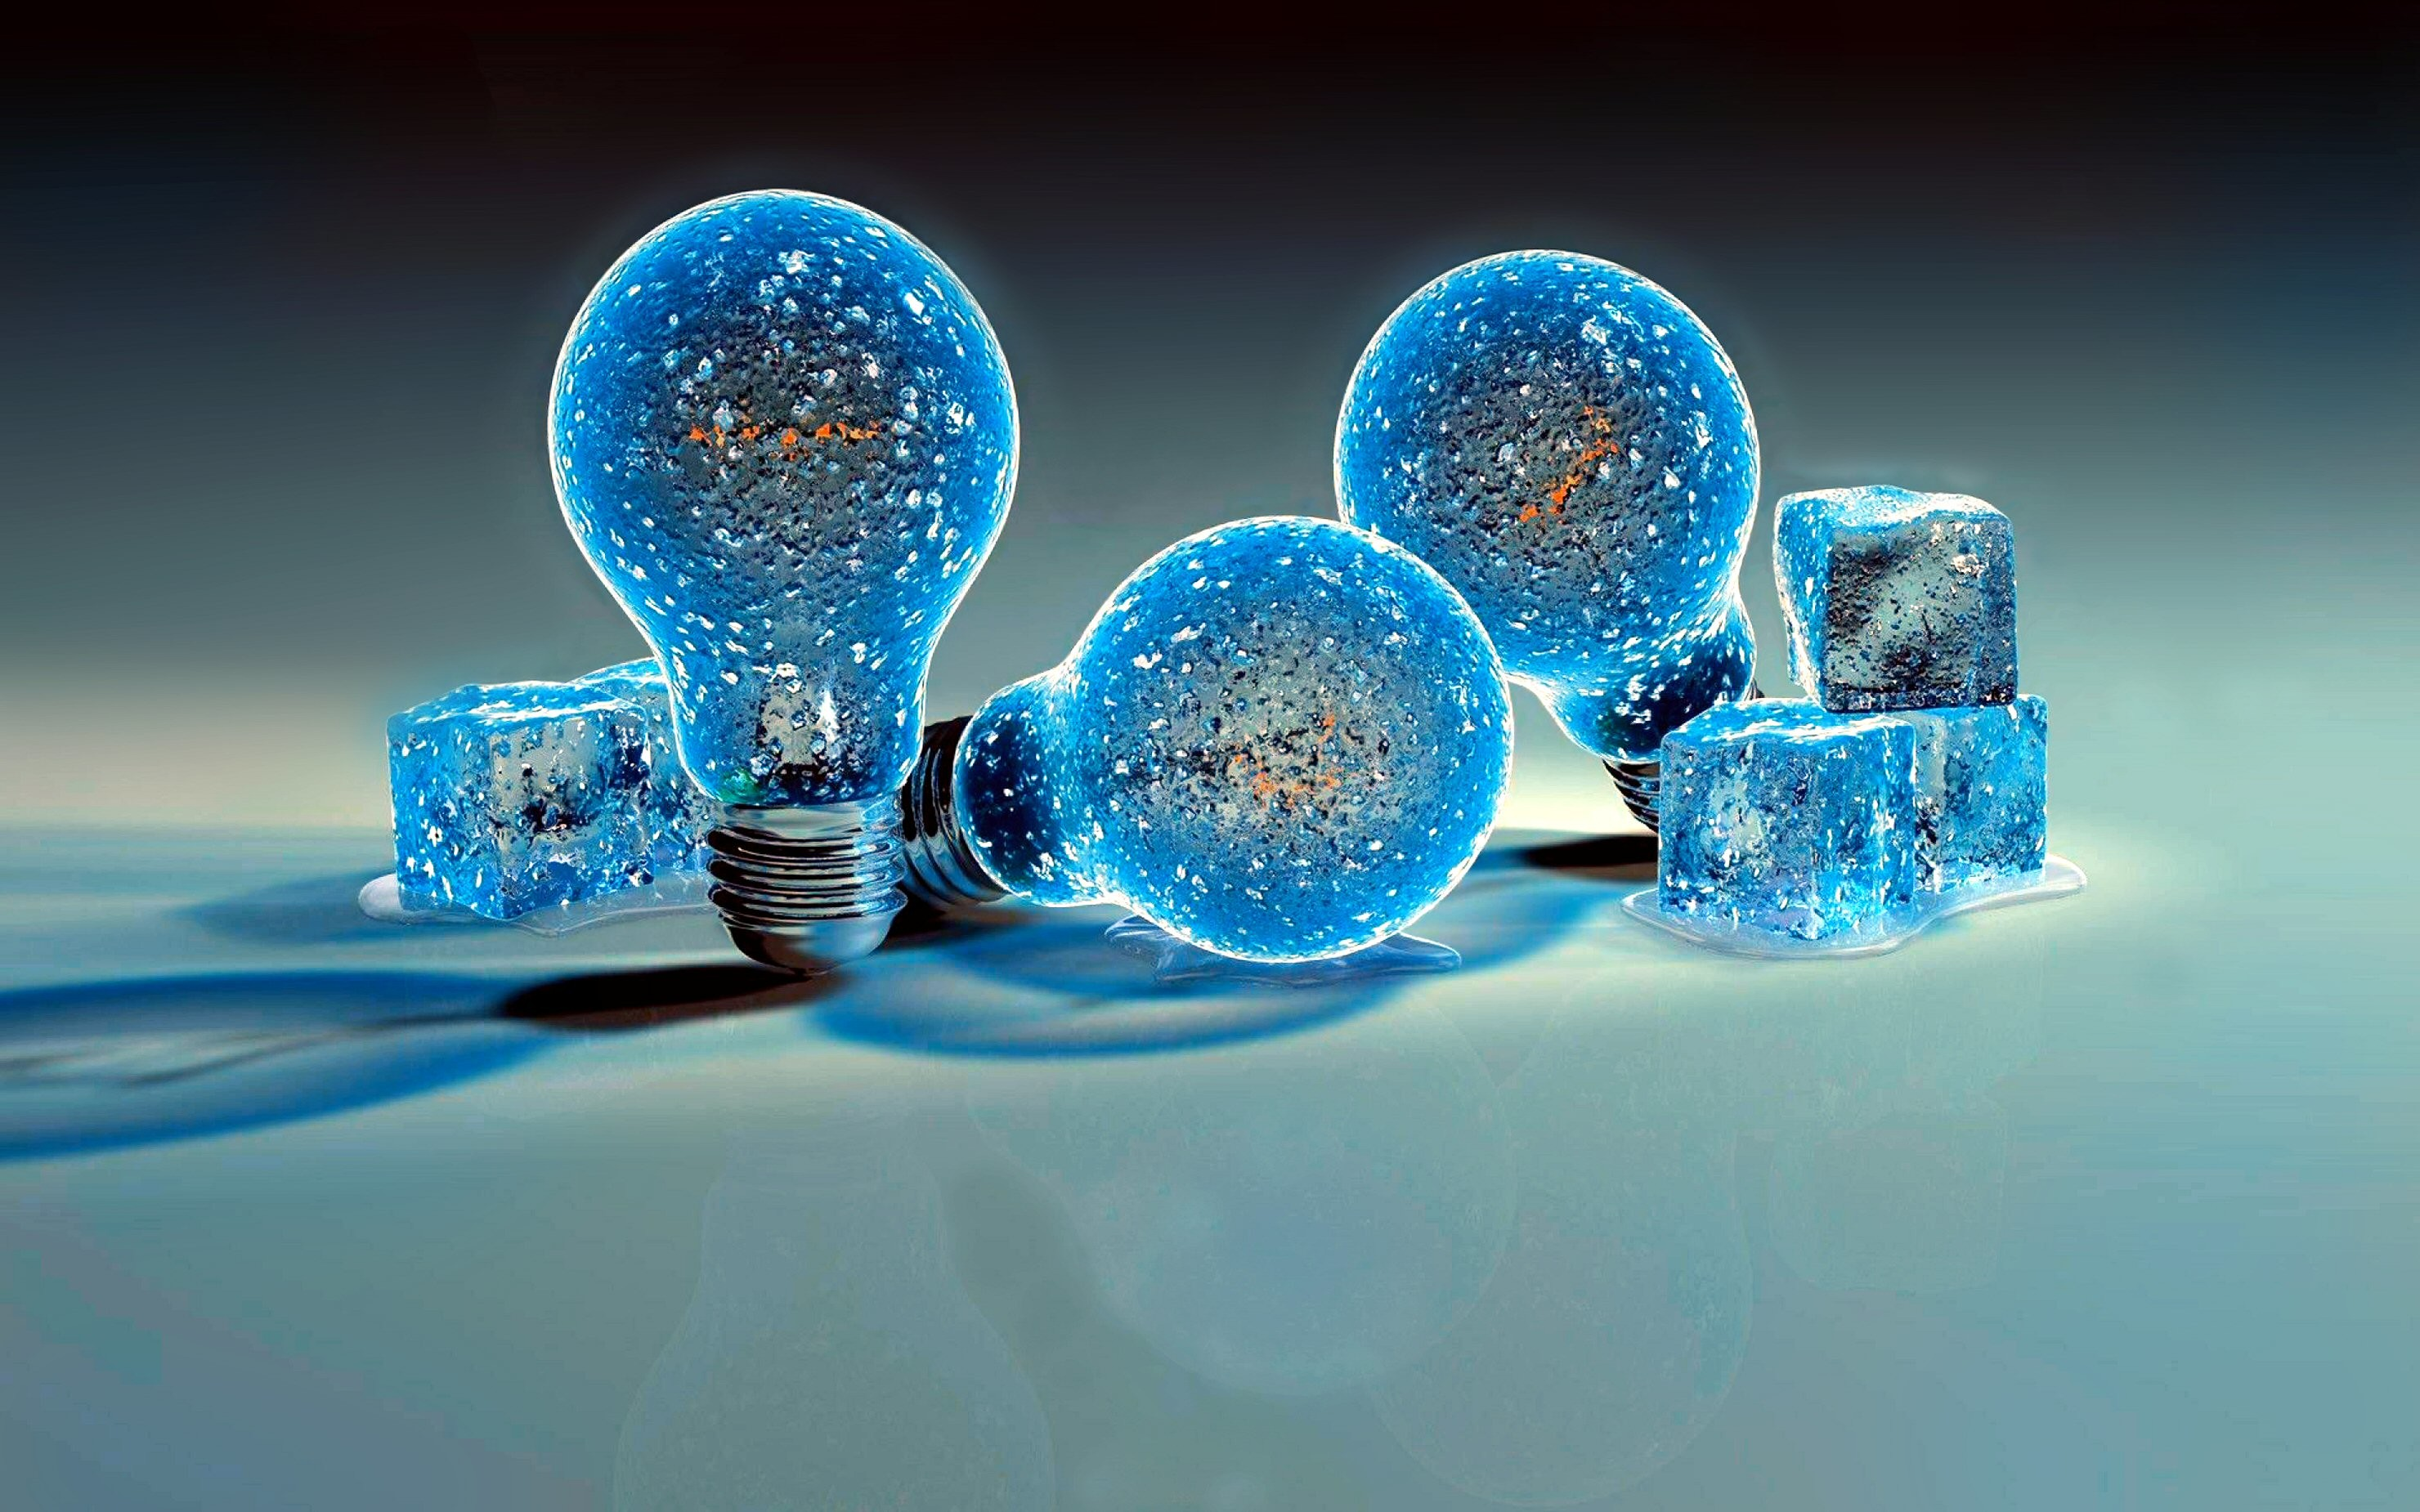 2960x1850 Man Made - Light Bulb Fantasy Blue Magical Ice Reflection Bulb Wallpaper